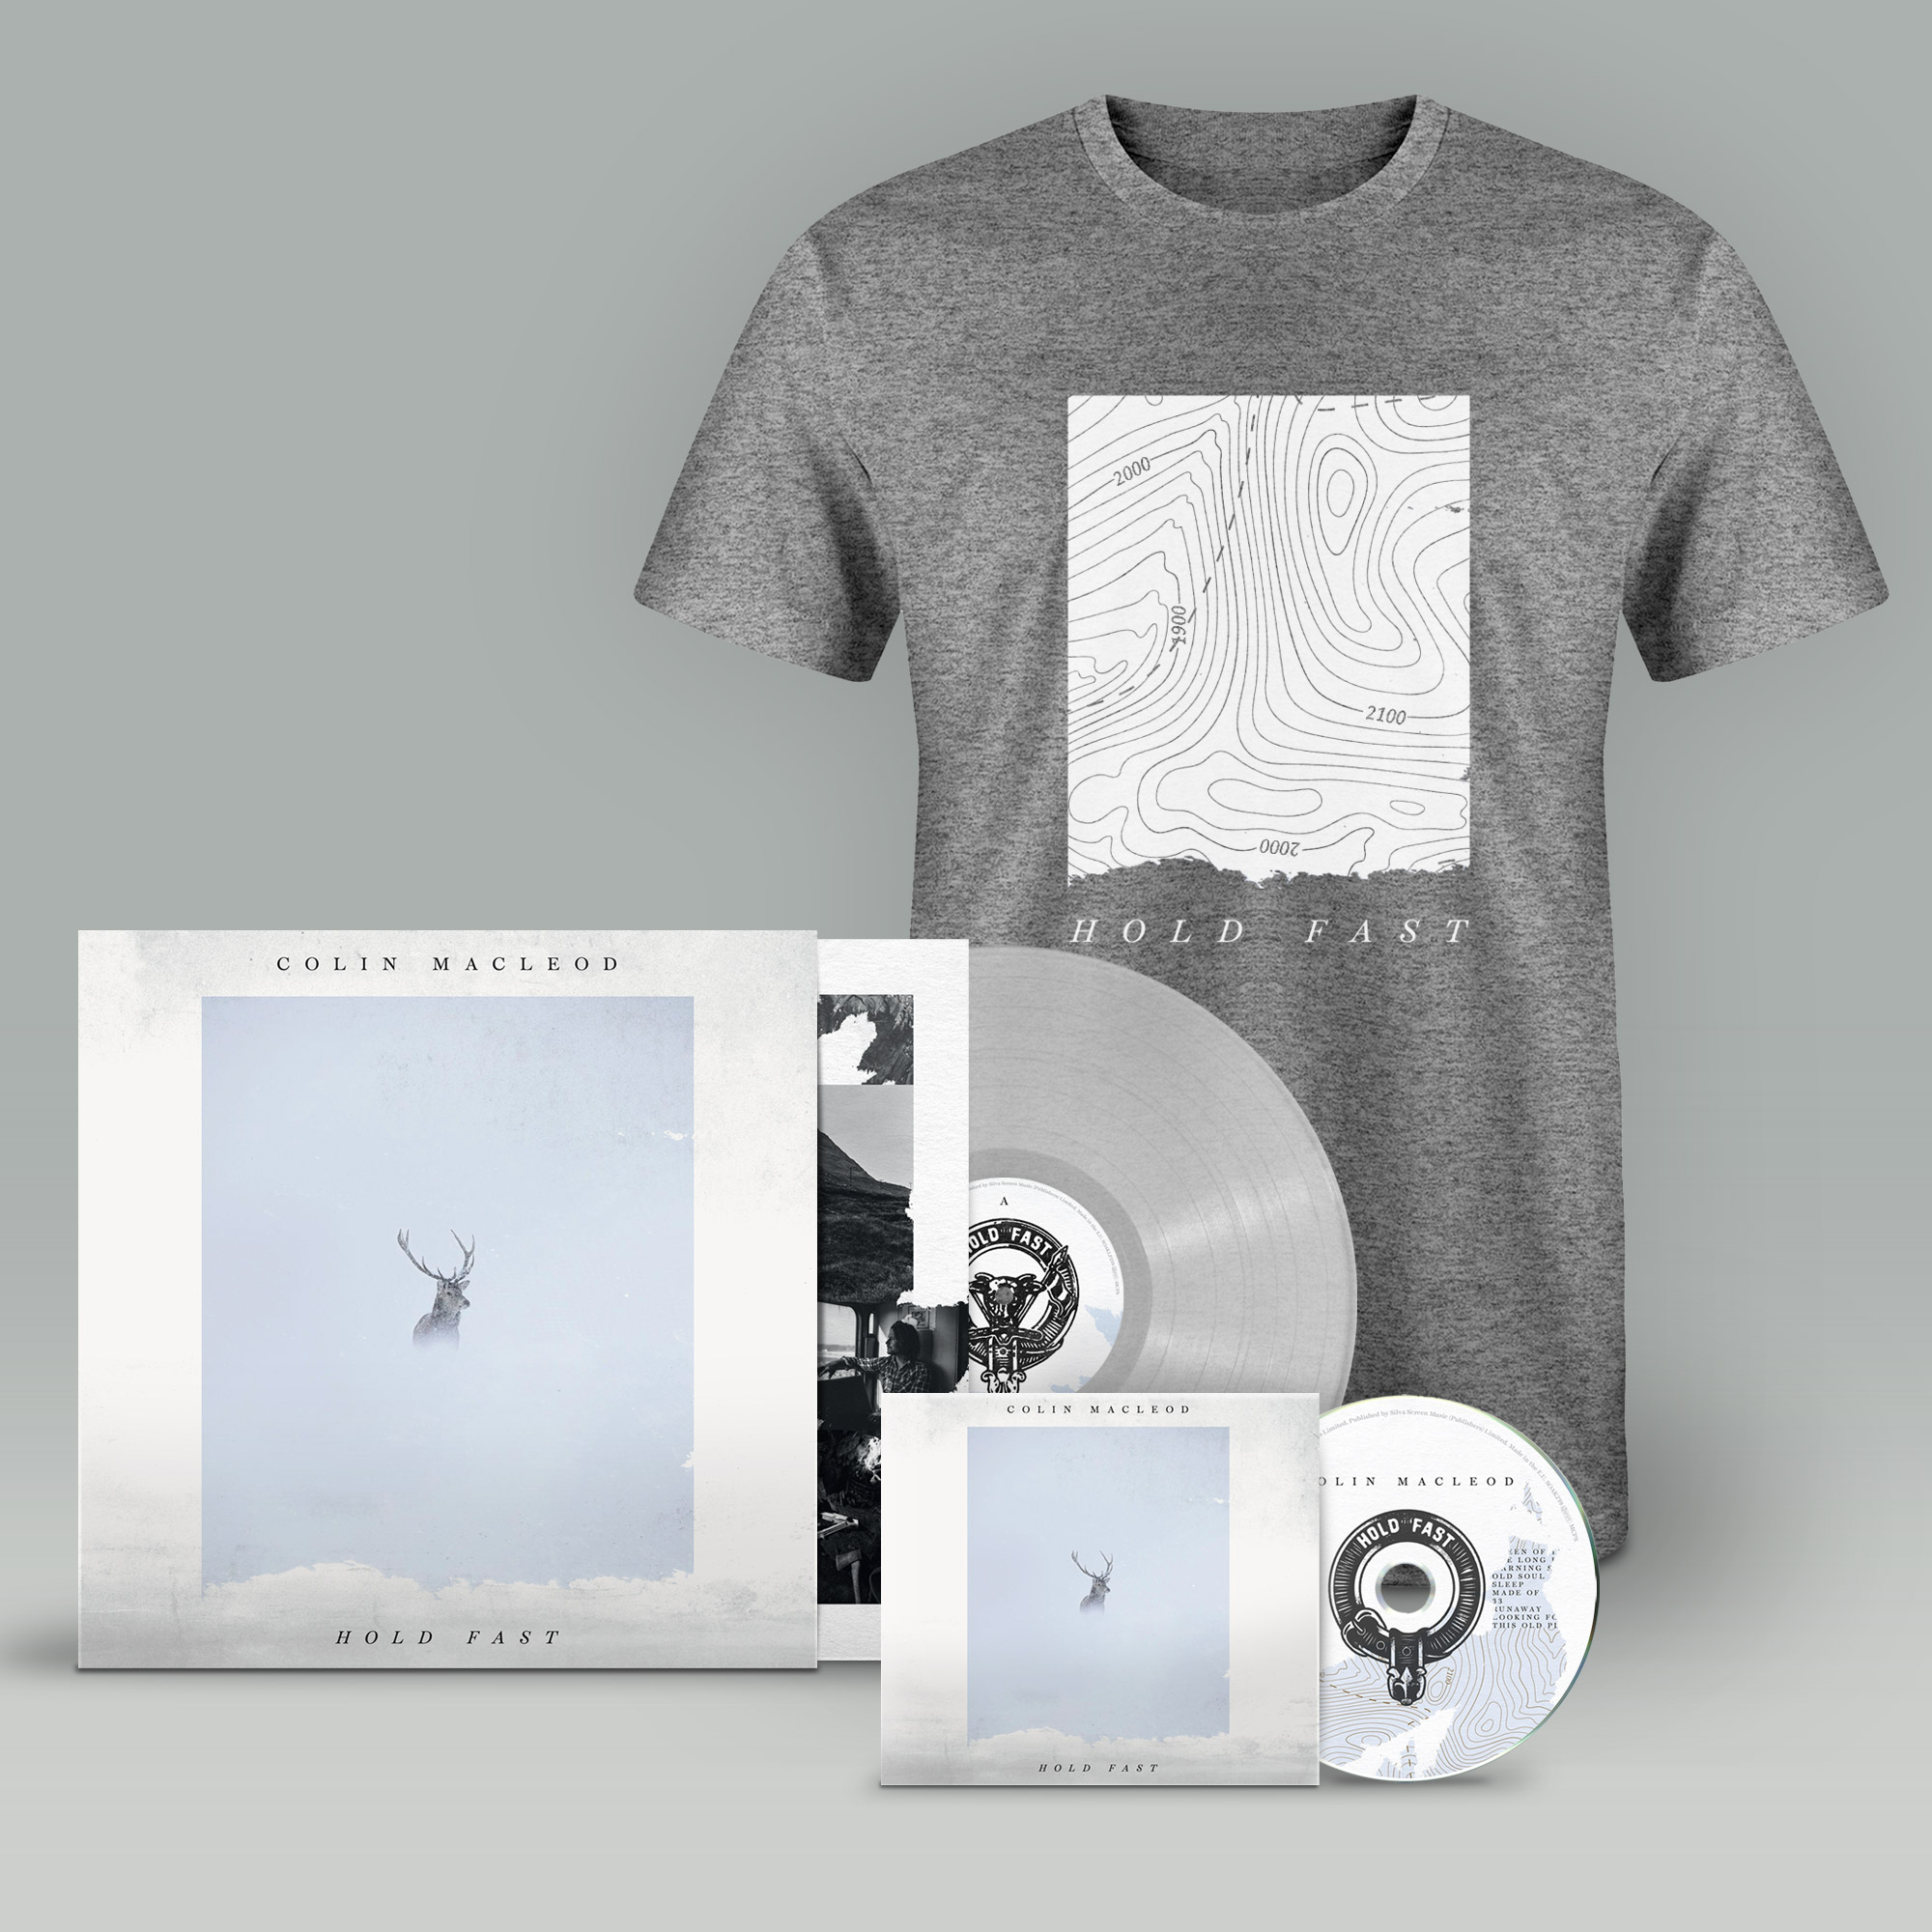 Buy Online Colin Macleod - Hold Fast CD (Signed) + Transparent Vinyl (Signed) + T-Shirt